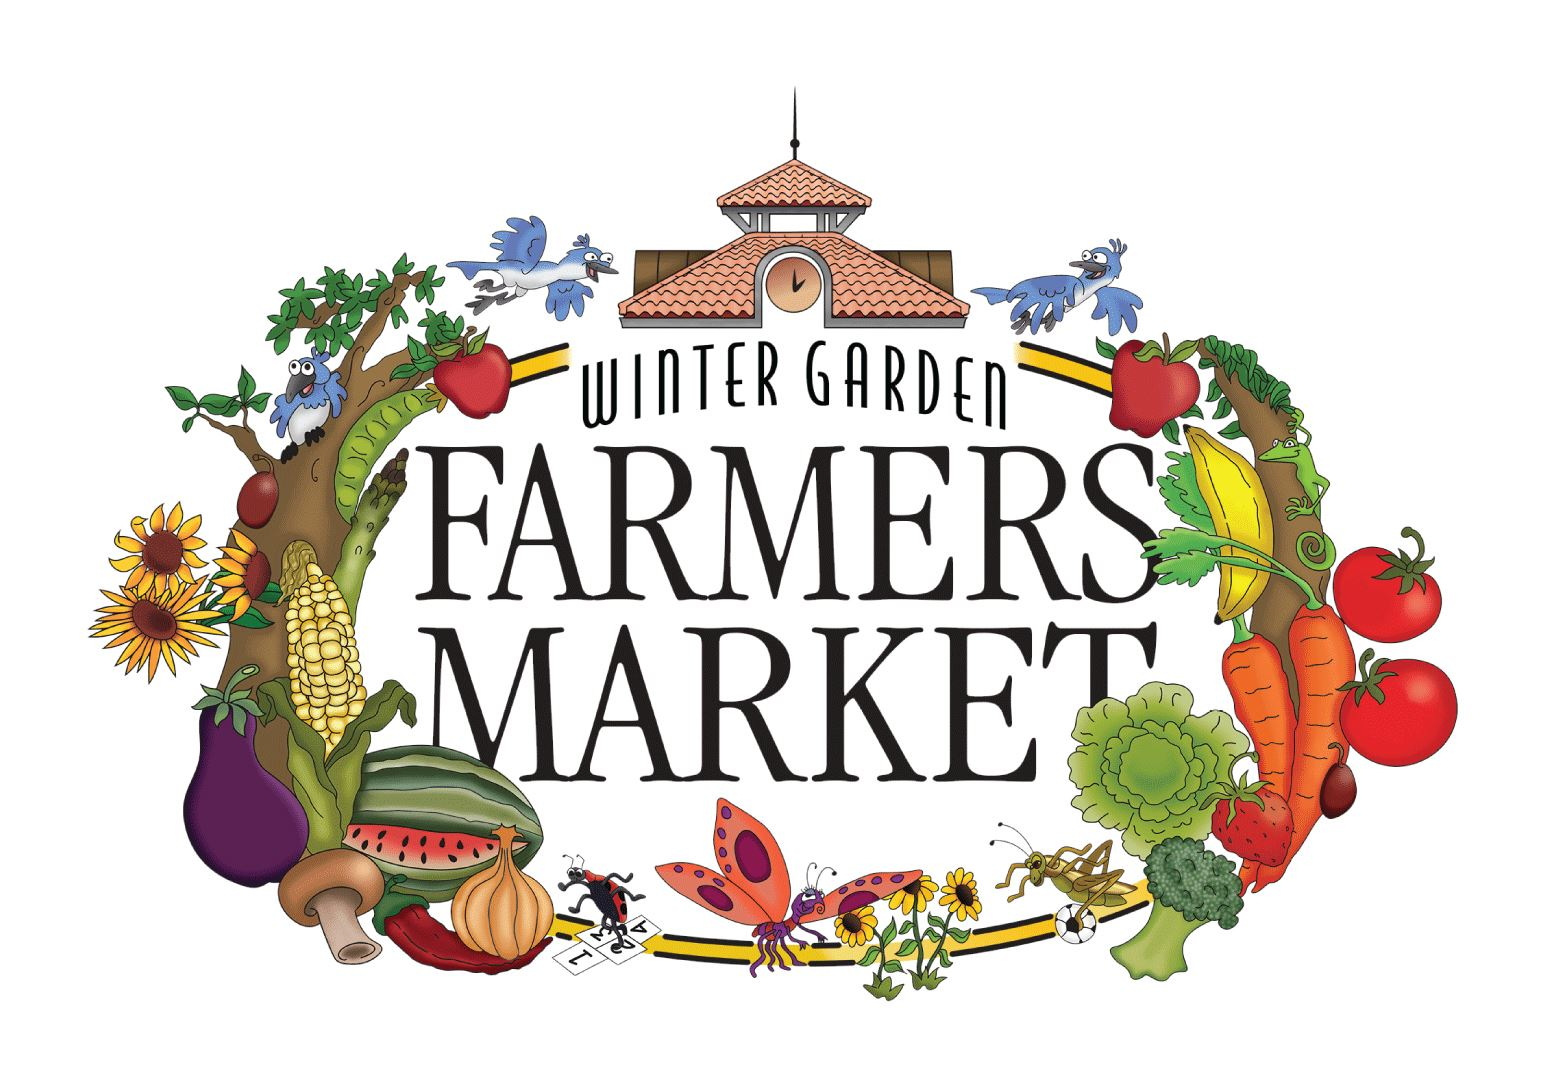 Winter Garden Farmers Market